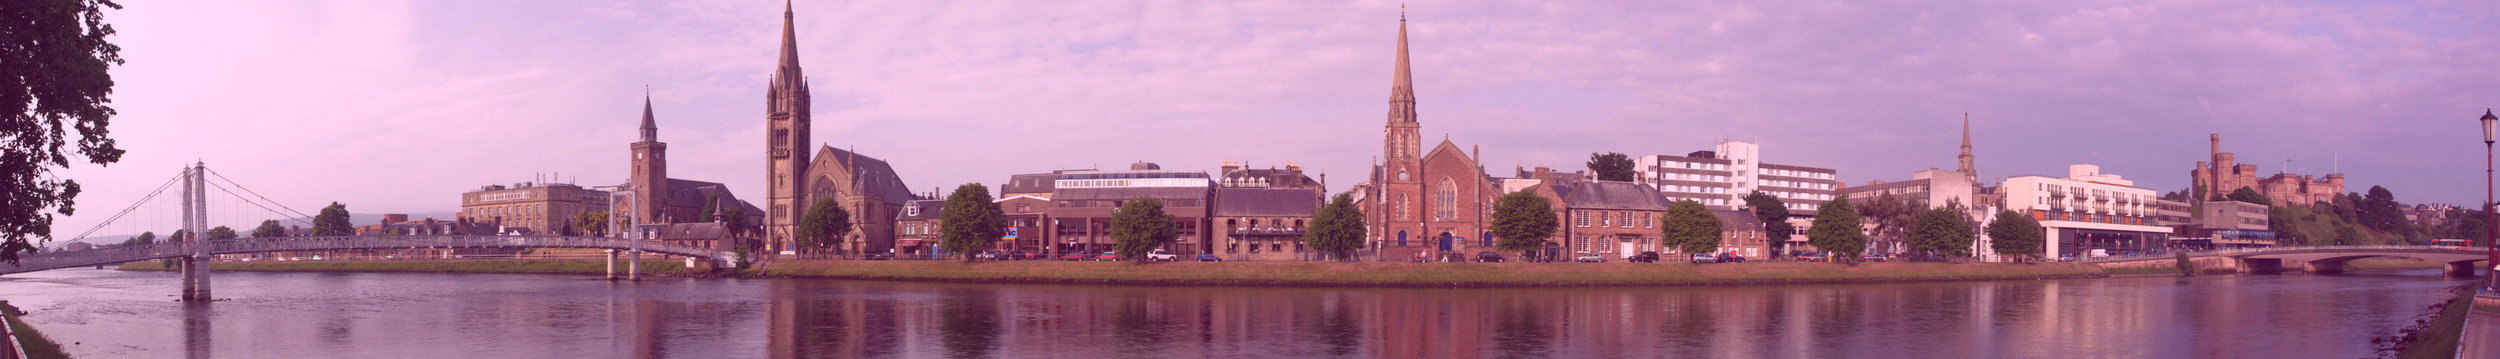 Inverness on the banks of the River Ness